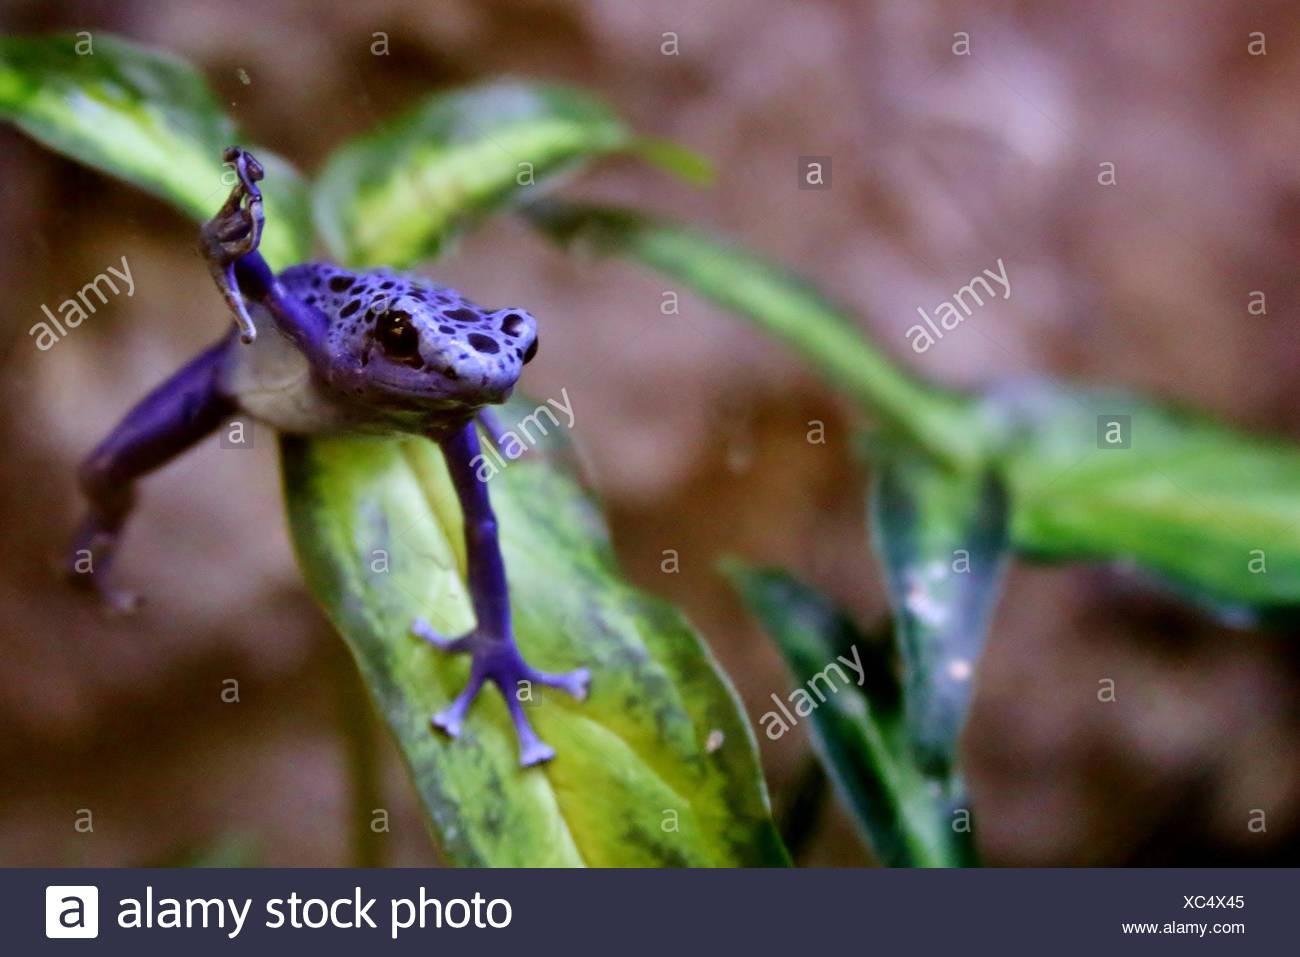 Purple Tree Frog On Plant In Forest Stock Photo